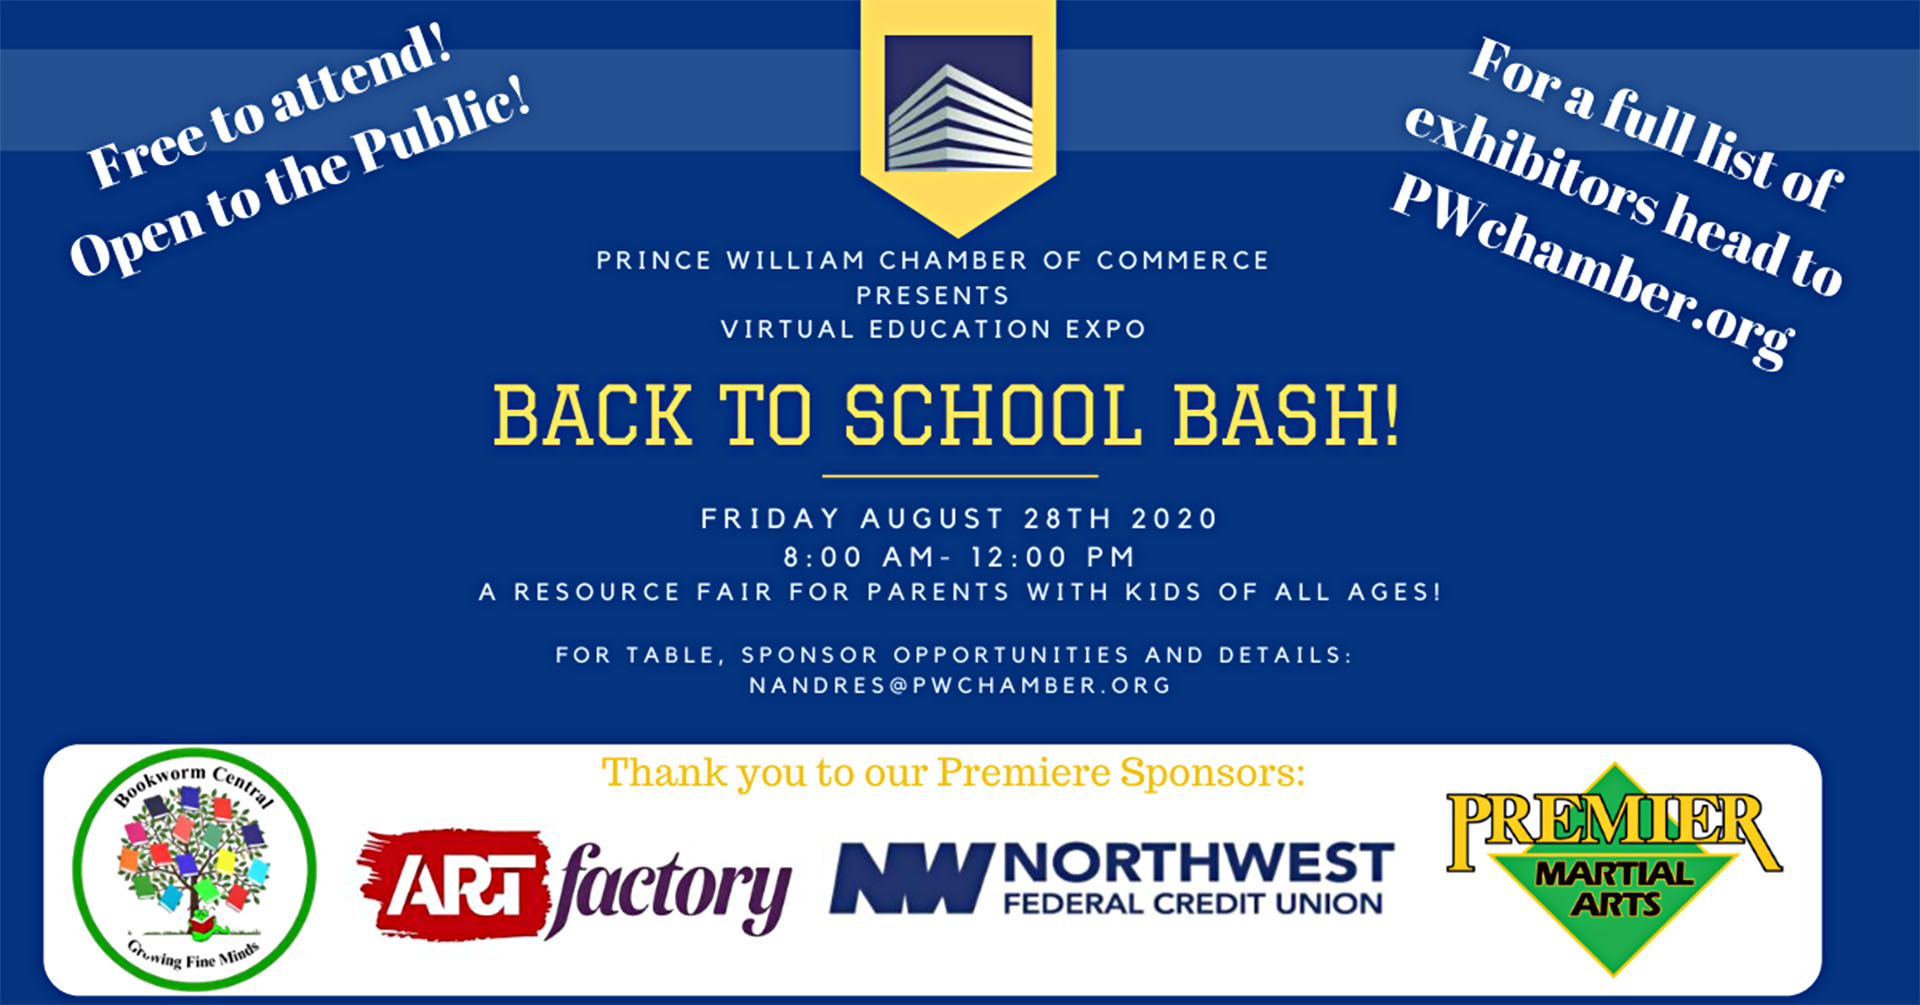 Prince William Chamber of Commerce — adapting in the new normal with a parent resource fair